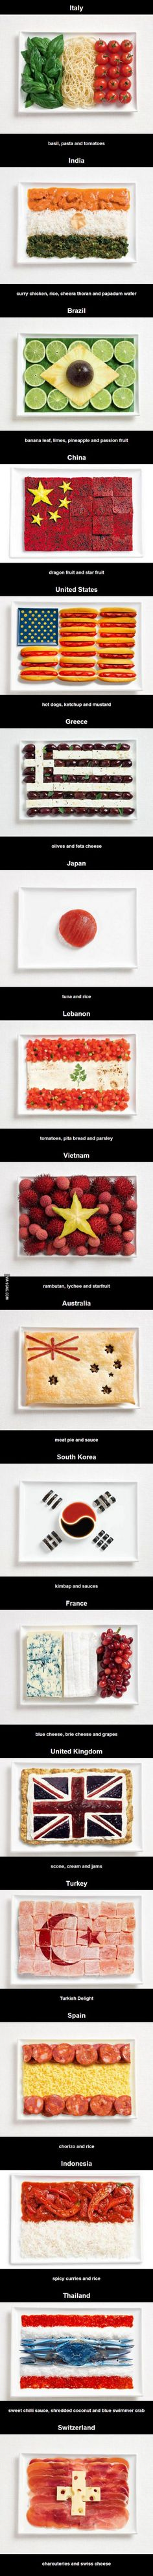 Flags made from nation's food